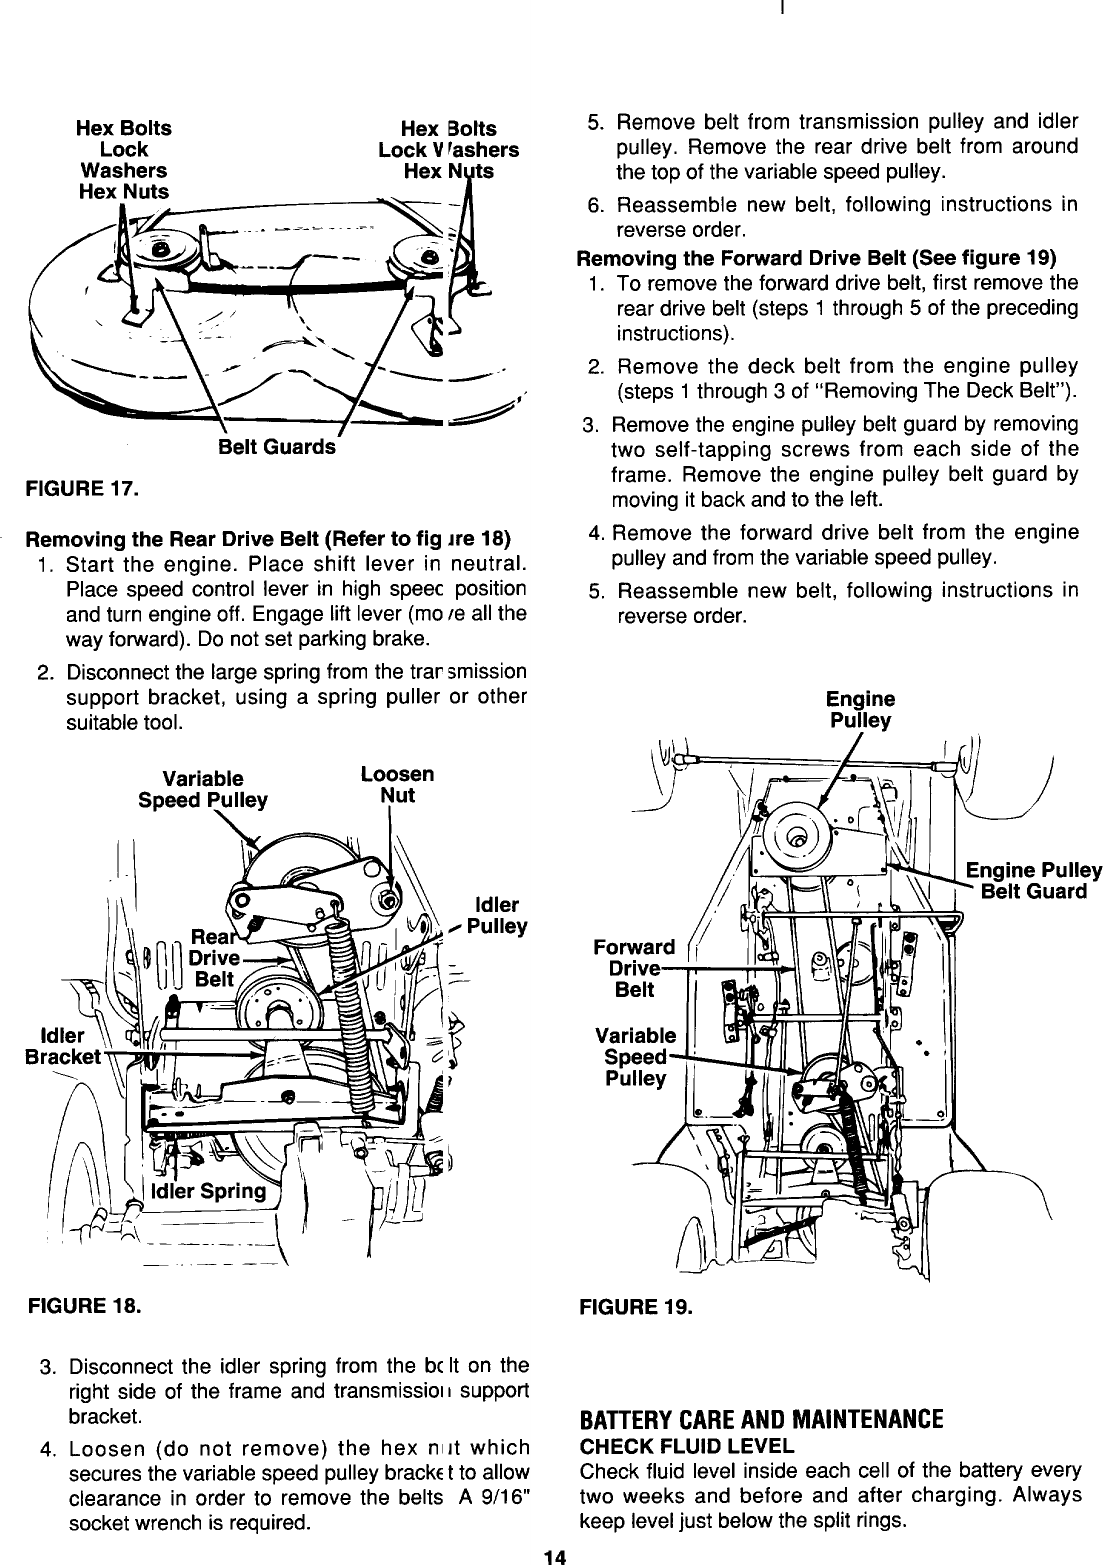 Mtd Variable Speed Pulley Removal